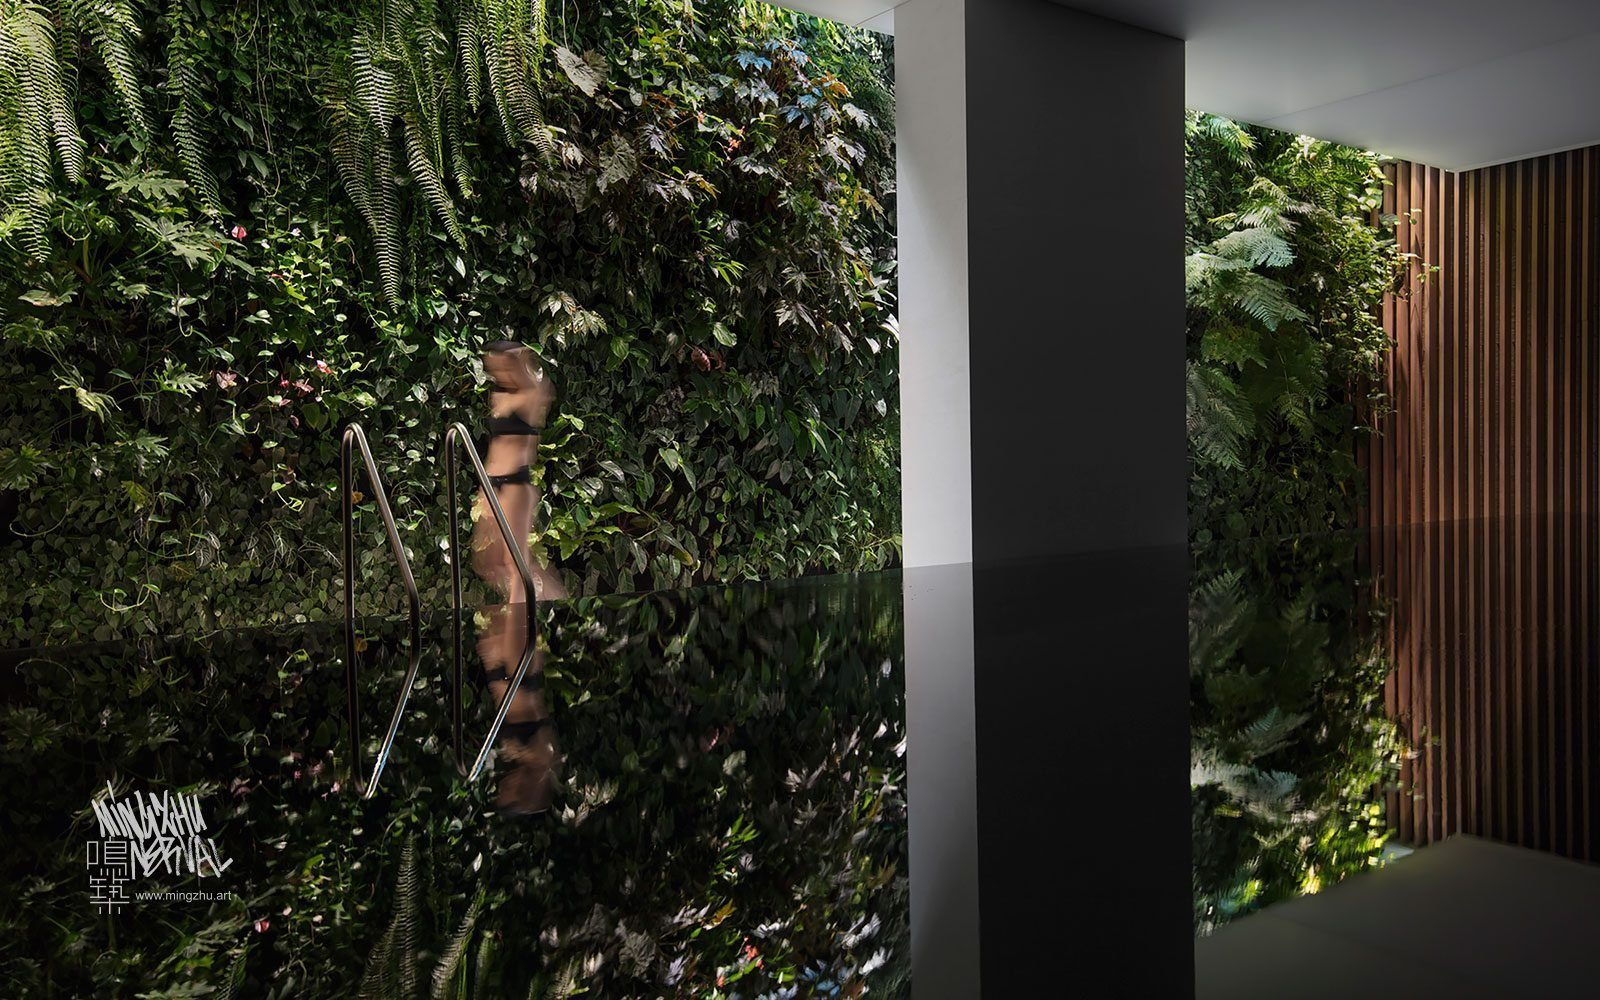 At Mingzhu Nerval, we thrive at creating the most beautiful vertical gardens in the world. For this villa, we created a magnificent living wall design – Beijing, 2017.